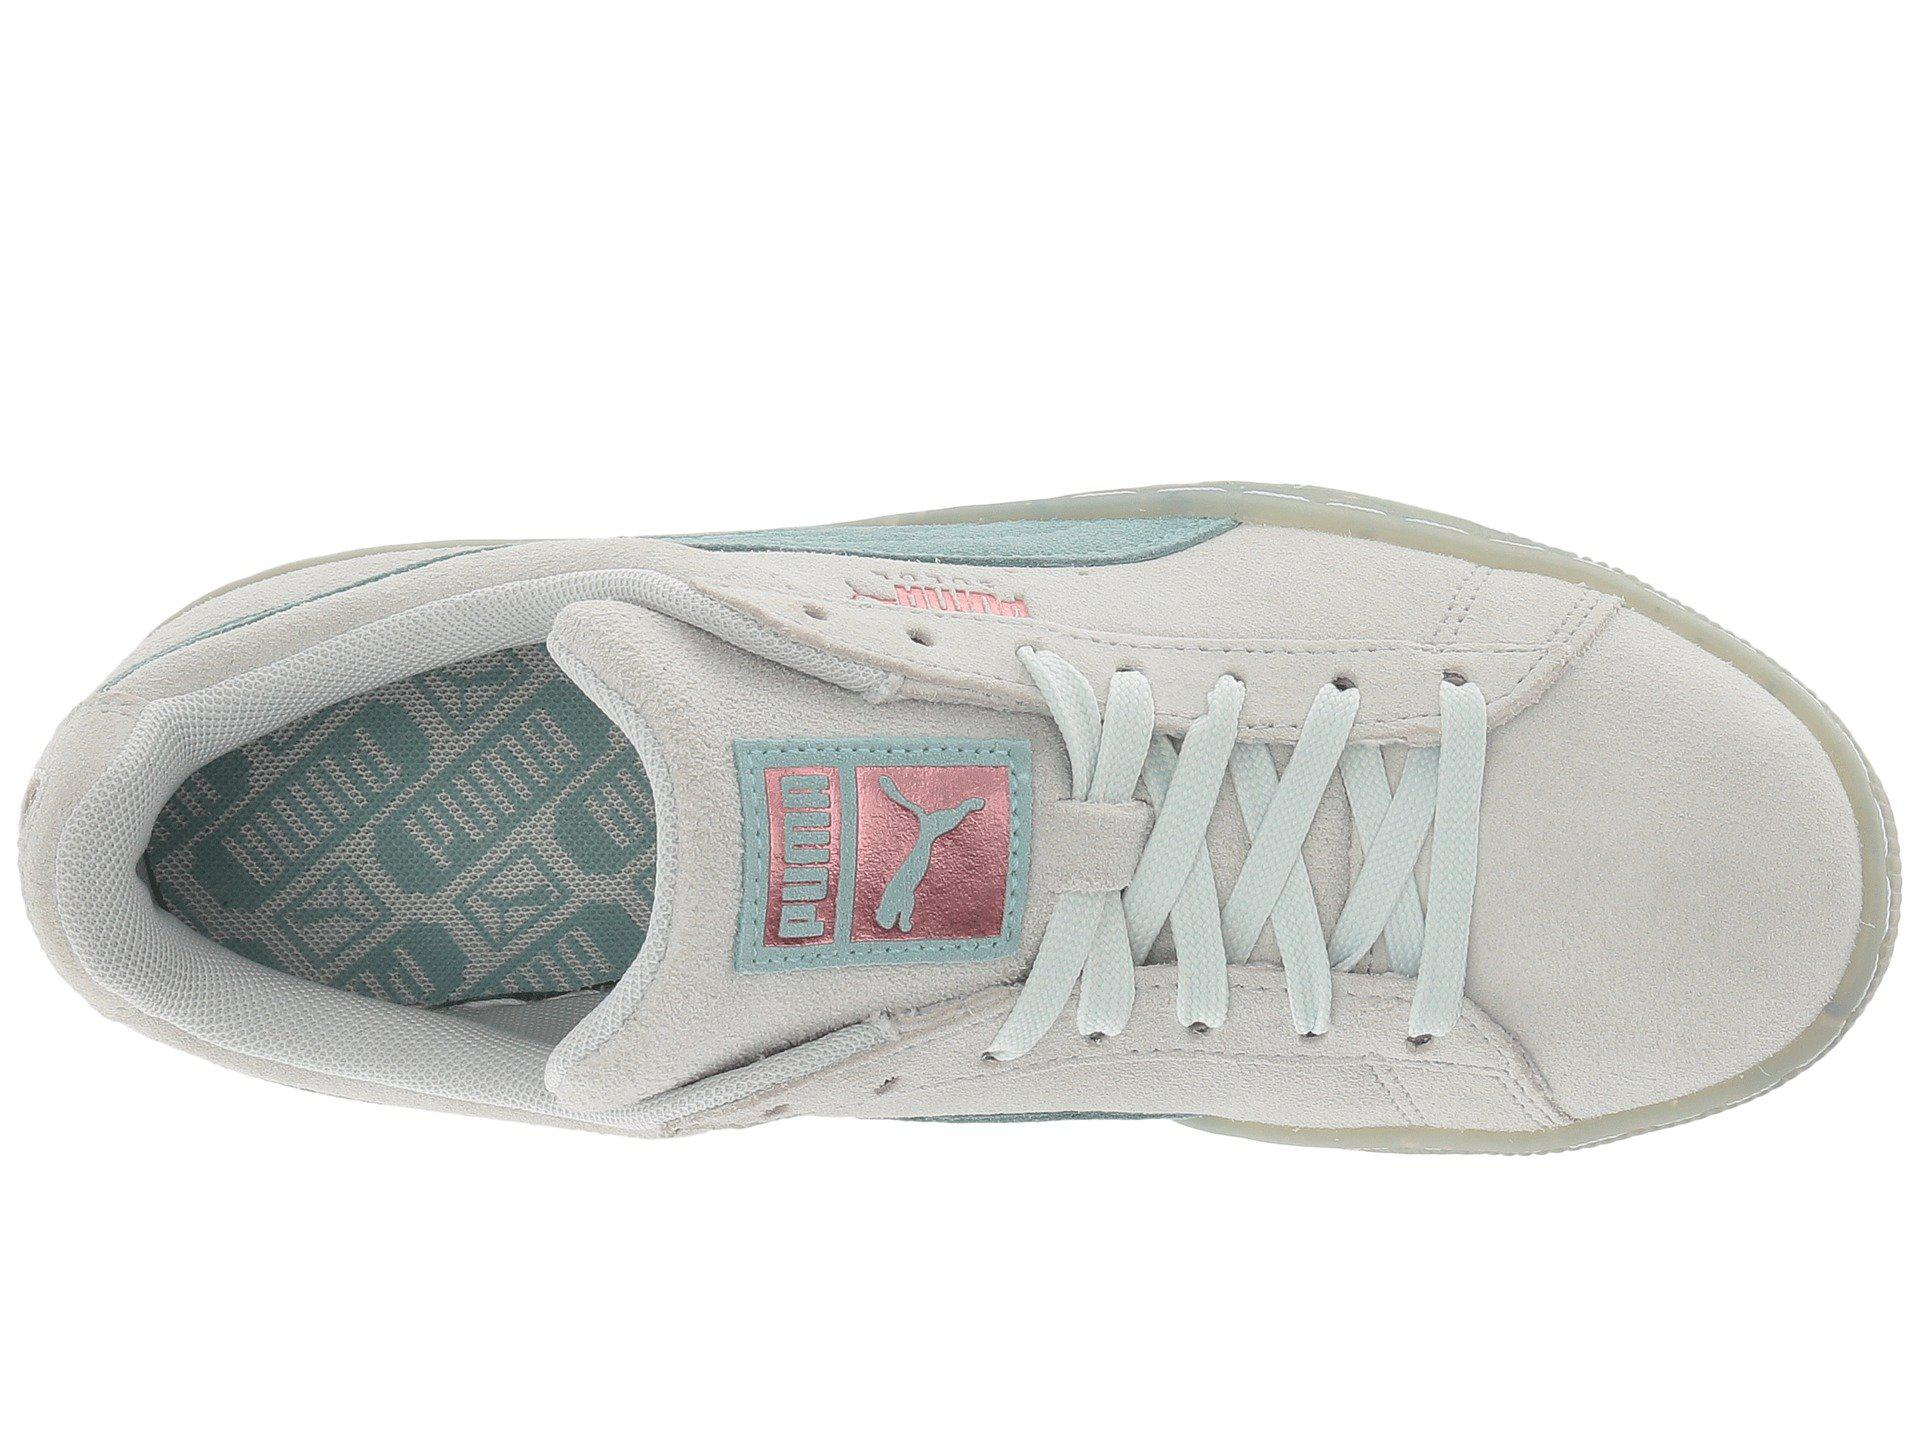 ... Women S SNEAKERS 9 Shell Pink-shell top quality 3fef1 c73a7  Lyst - Puma  Suede Classic Glitz in Blue good selling d63b4 9f0fe ... 59b63ba49